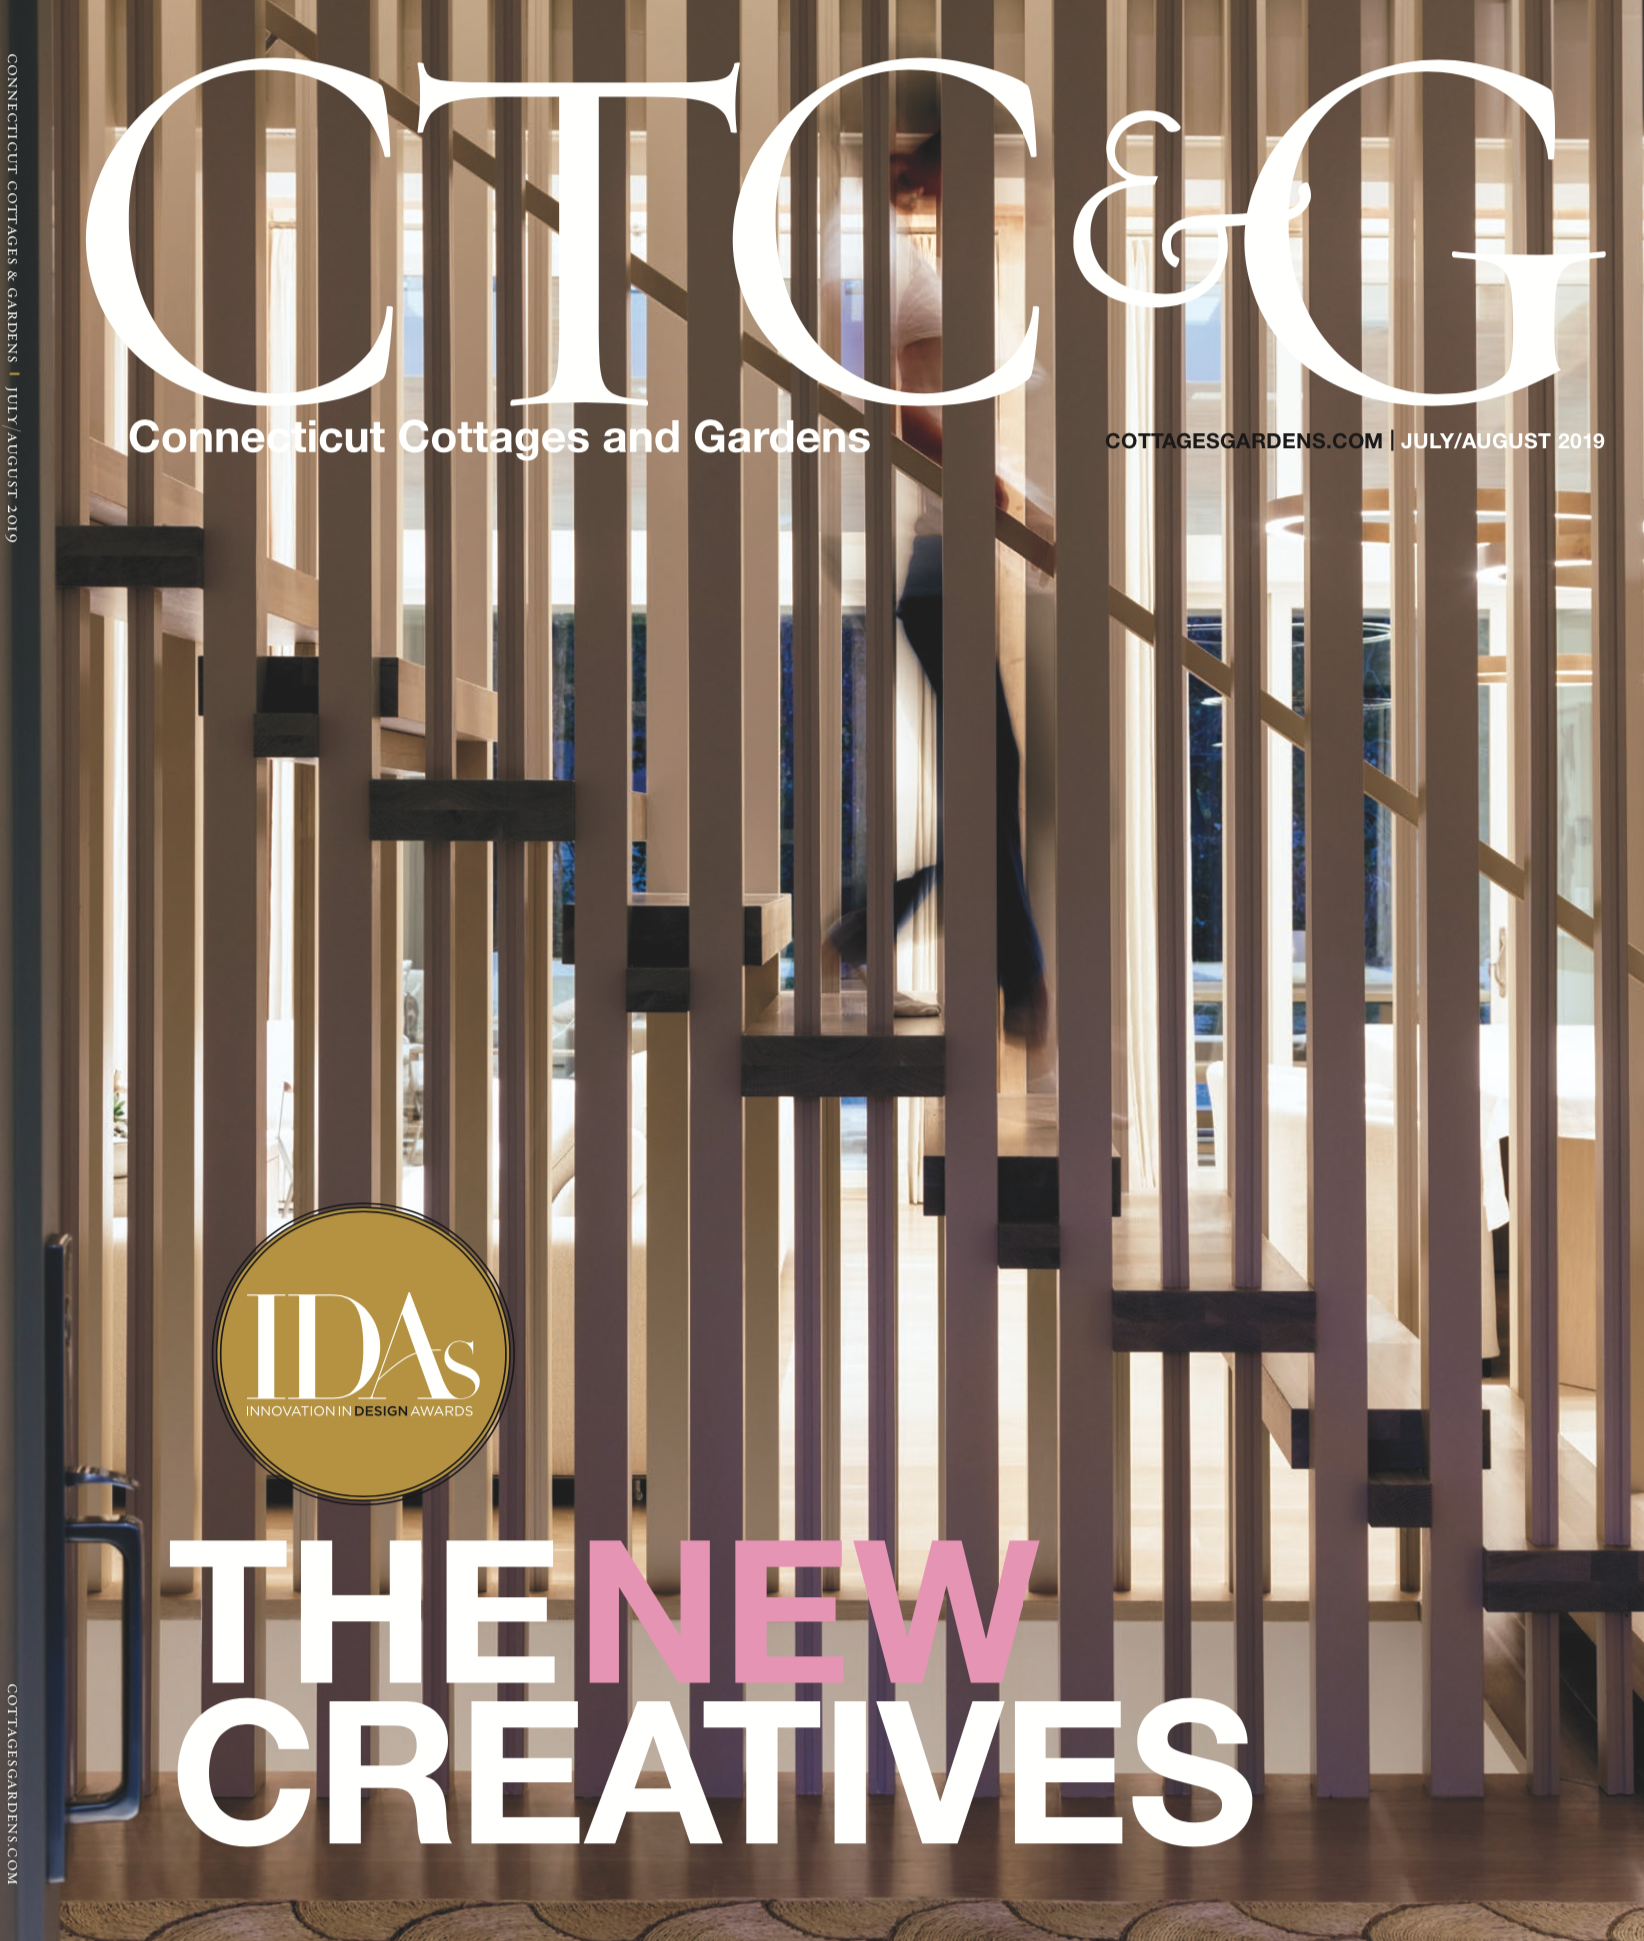 CTC&G - July/August 2019